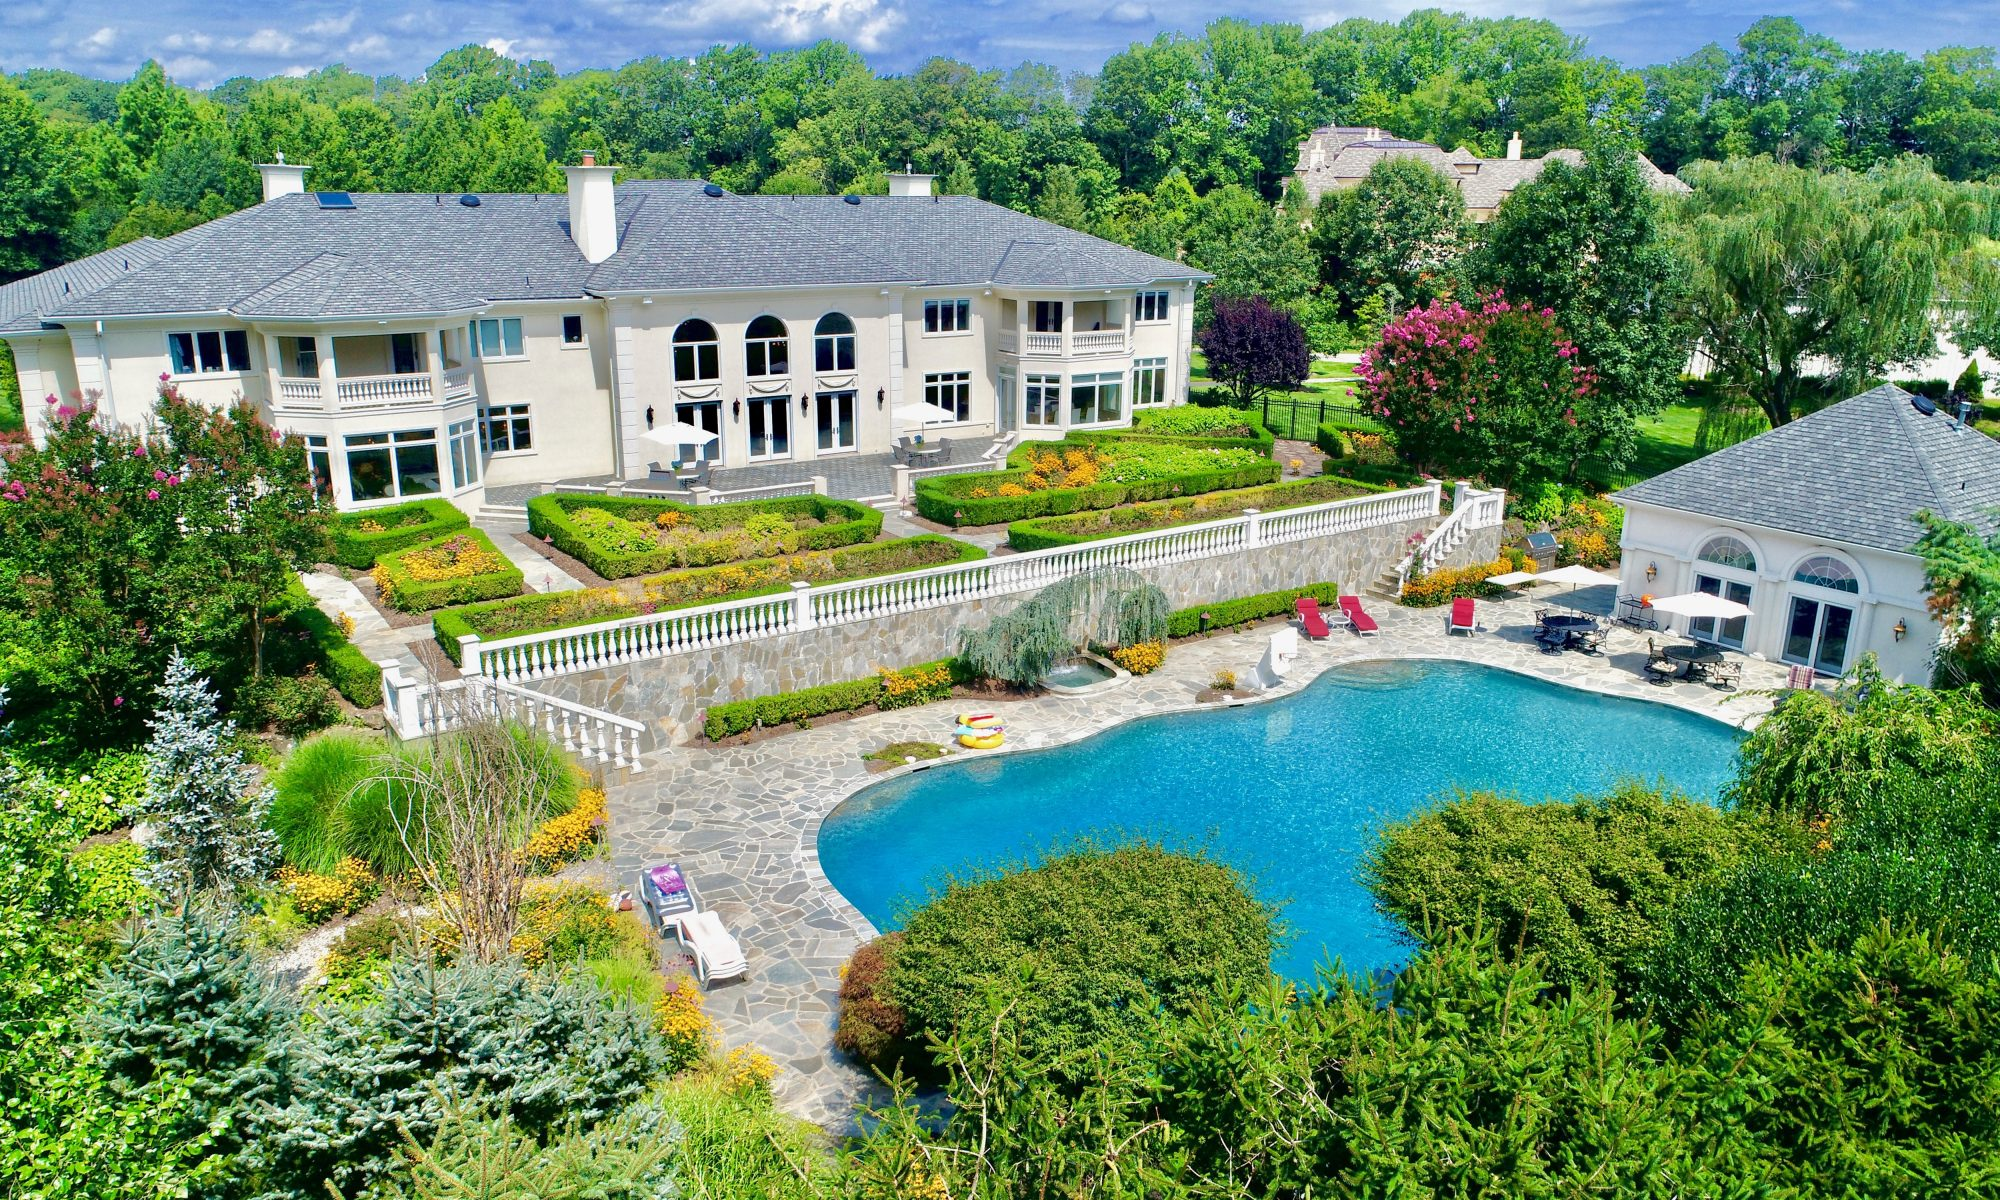 Colts Neck Homes For Sale, Estate Homes For Sale, High-end Homes, Luxury Homes for Sale